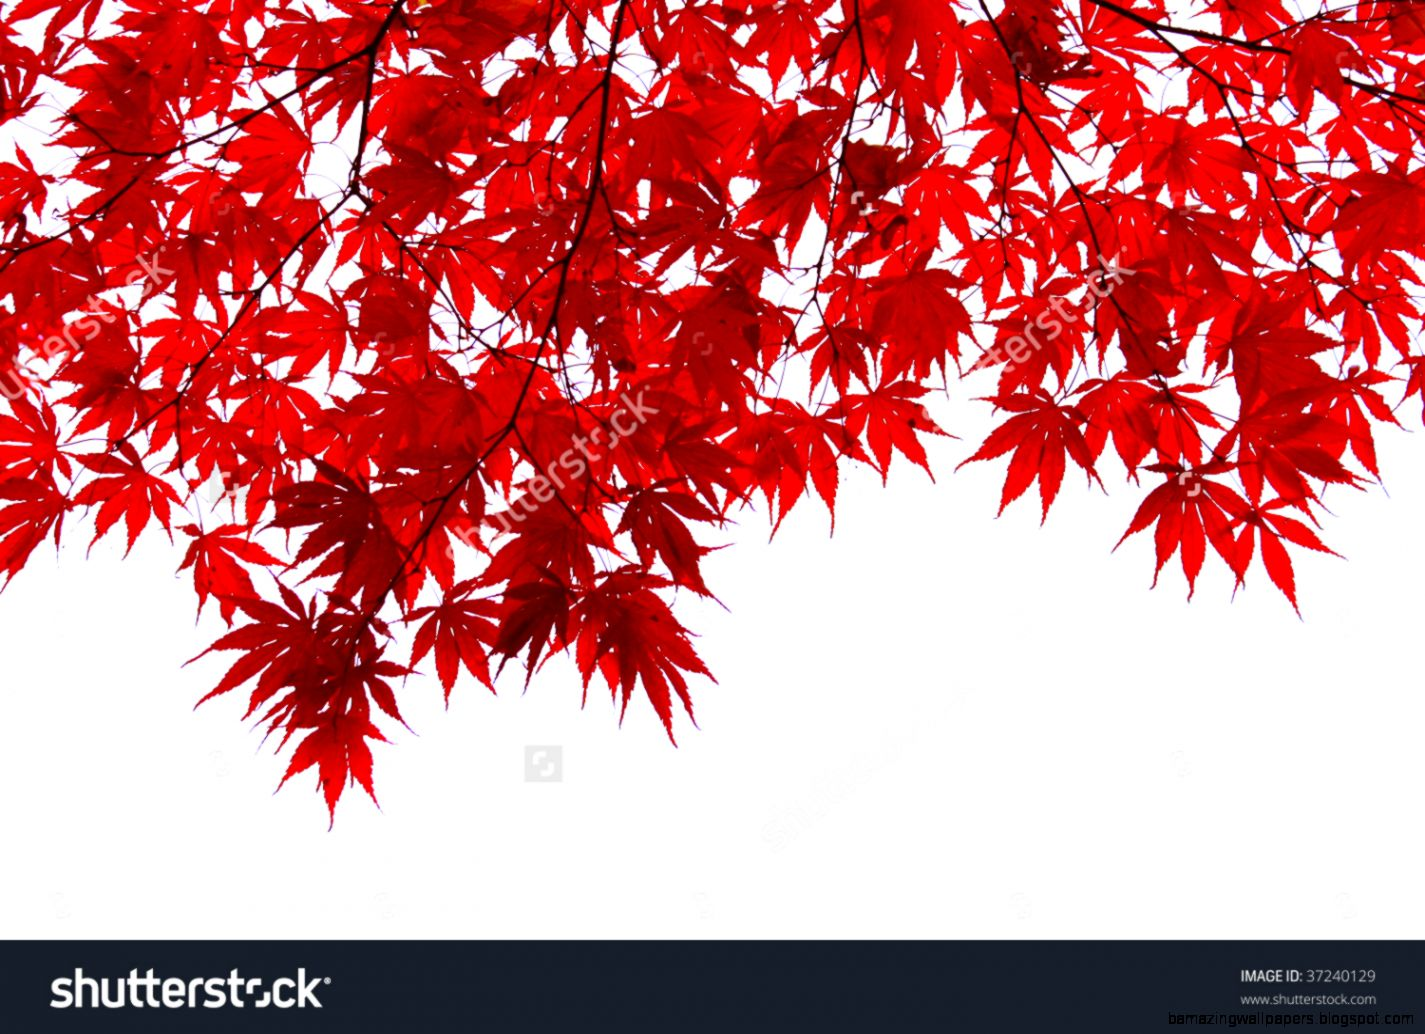 Red Japanese Maple Leaves Stock Photo 37240129  Shutterstock